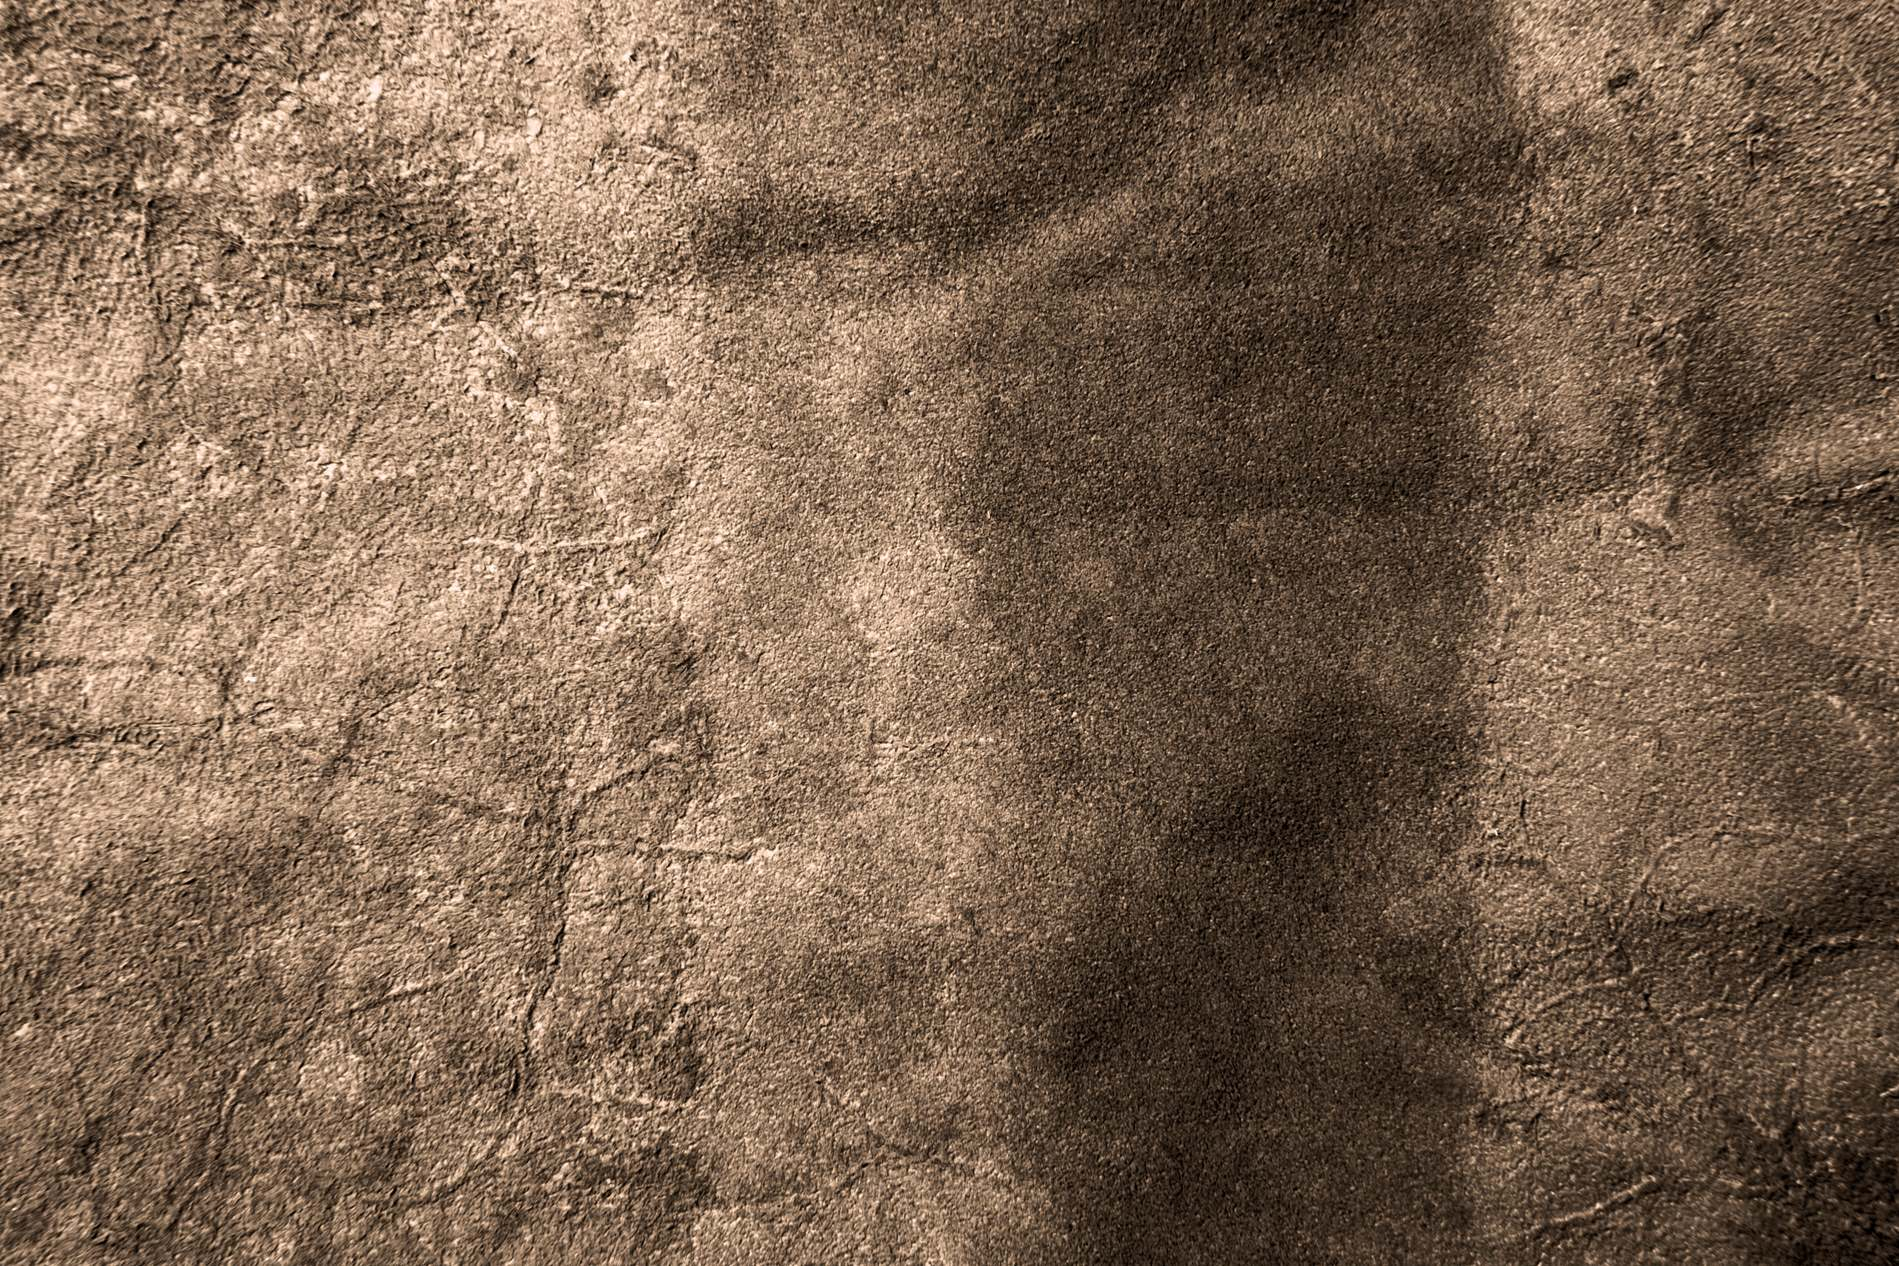 Brown Grunge Soft Leather Texture Background - PhotoHDX